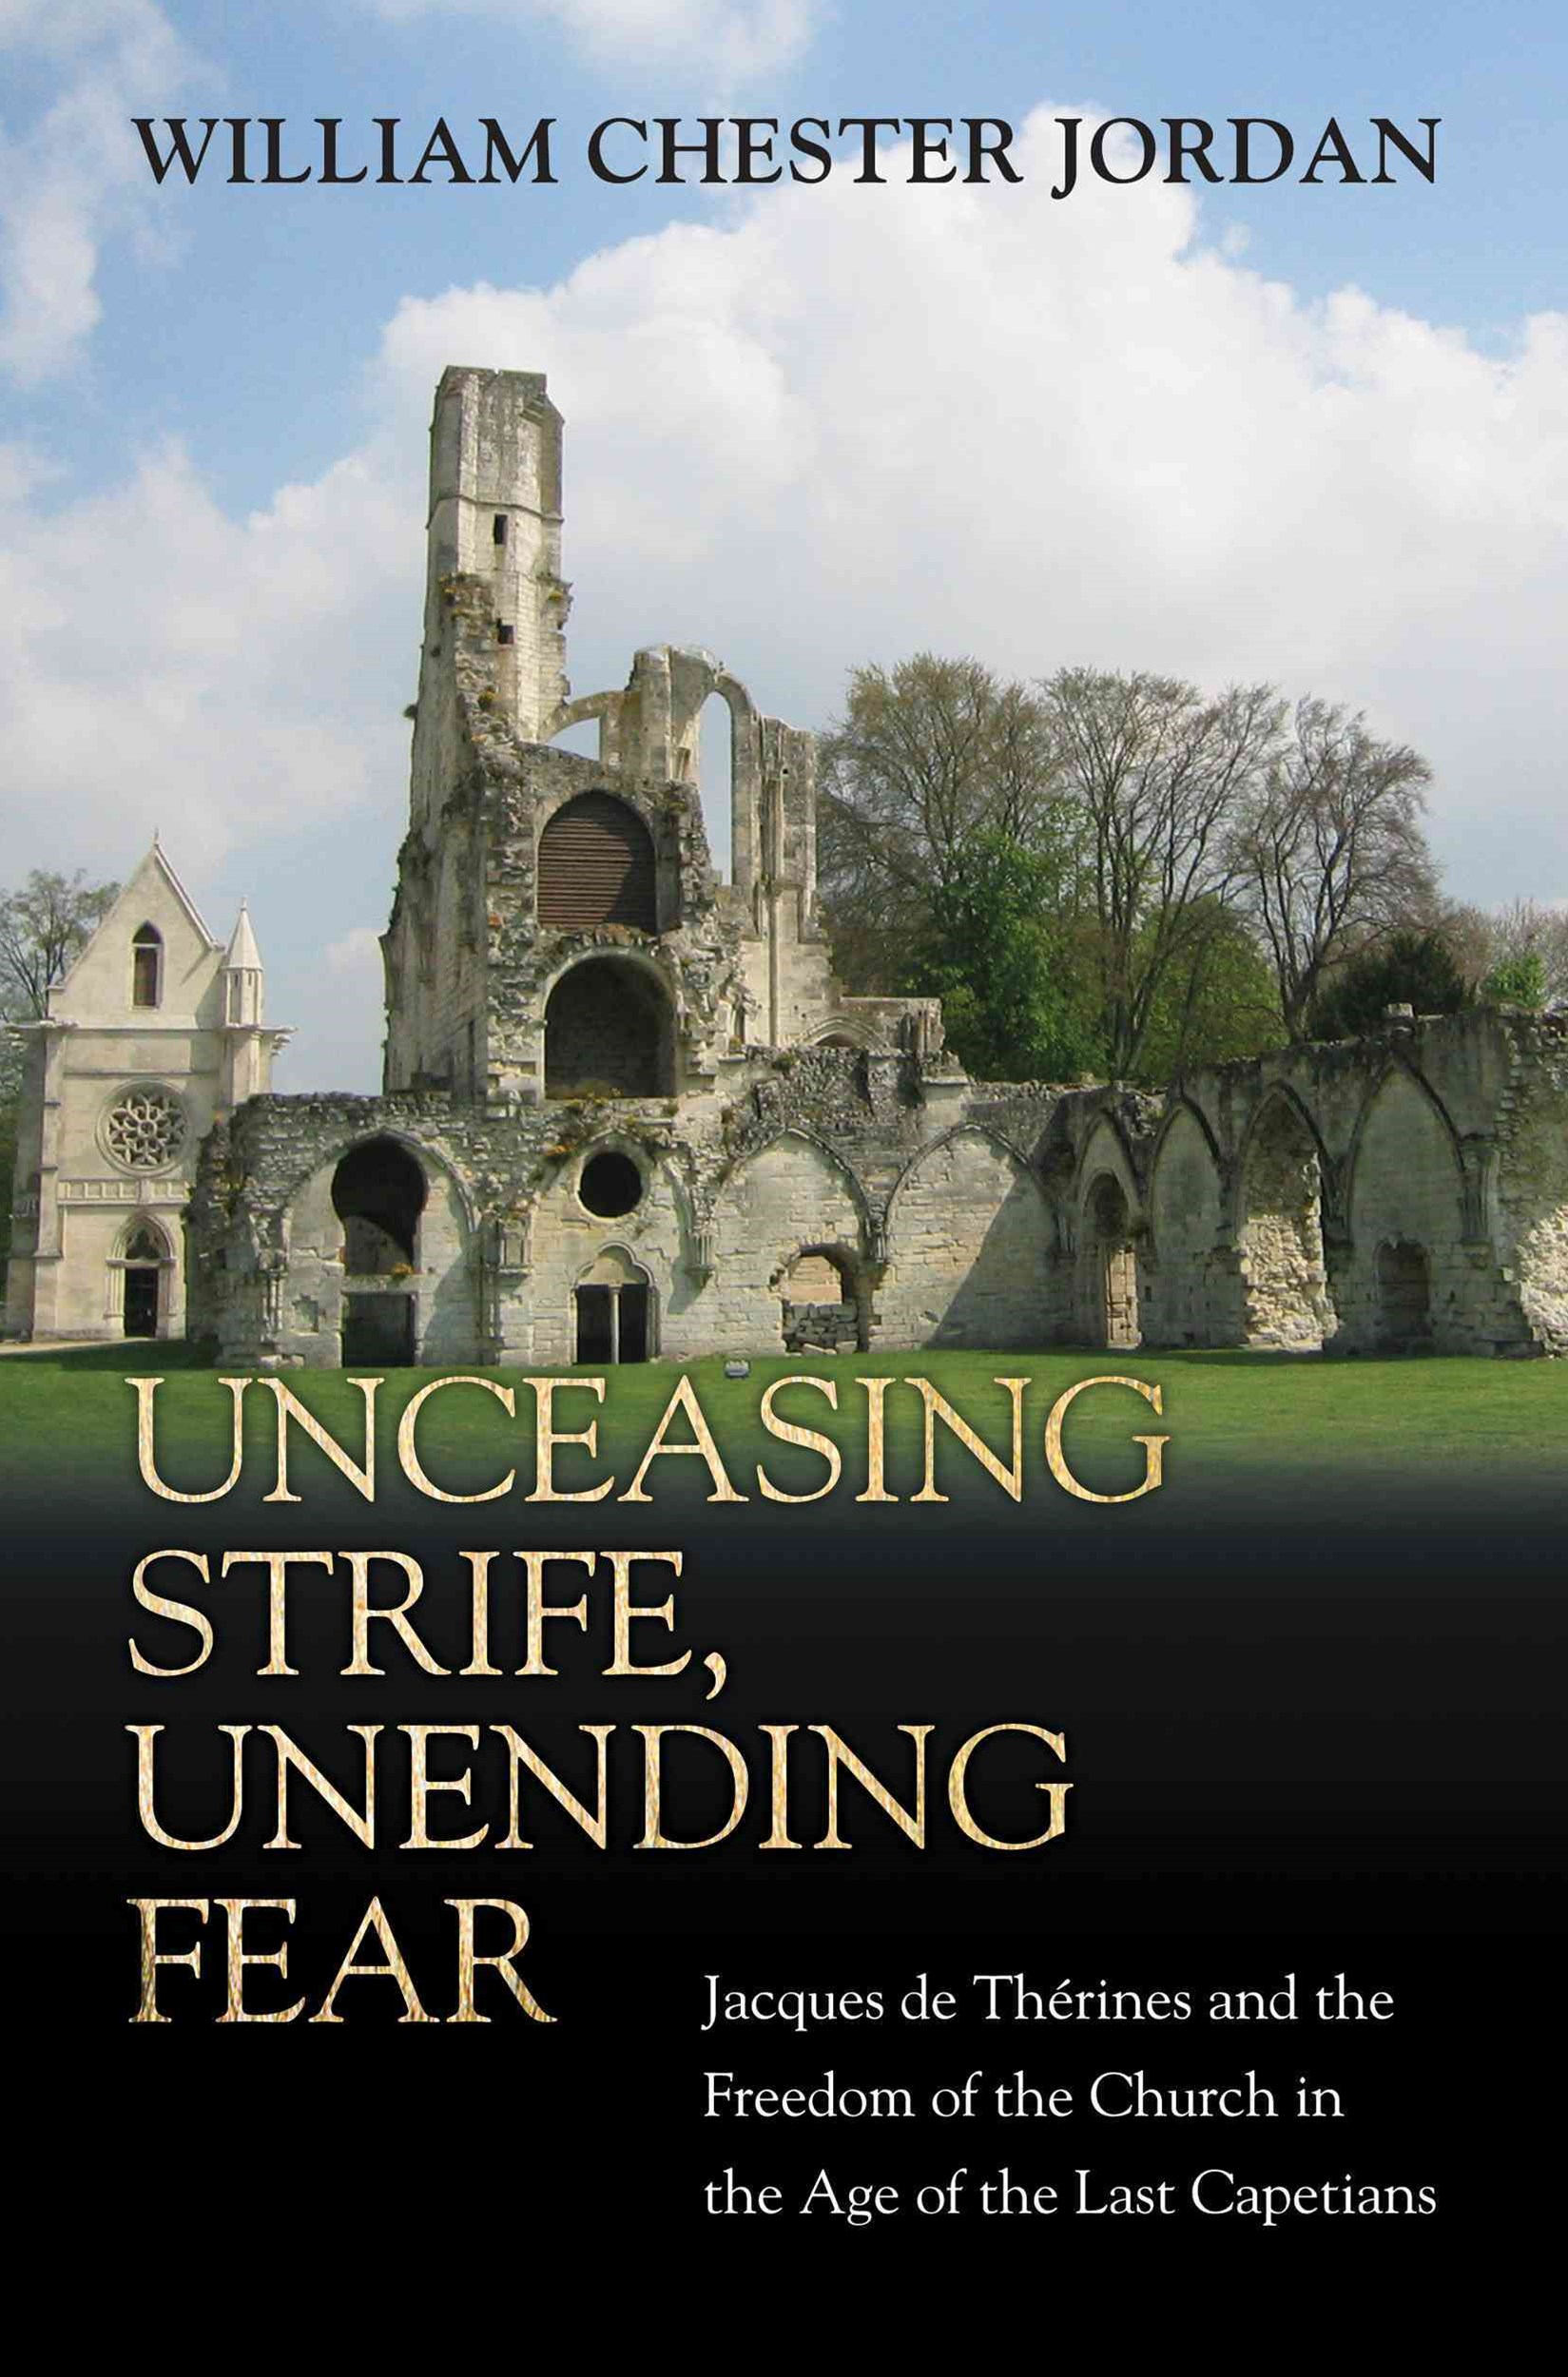 Unceasing Strife, Unending Fear